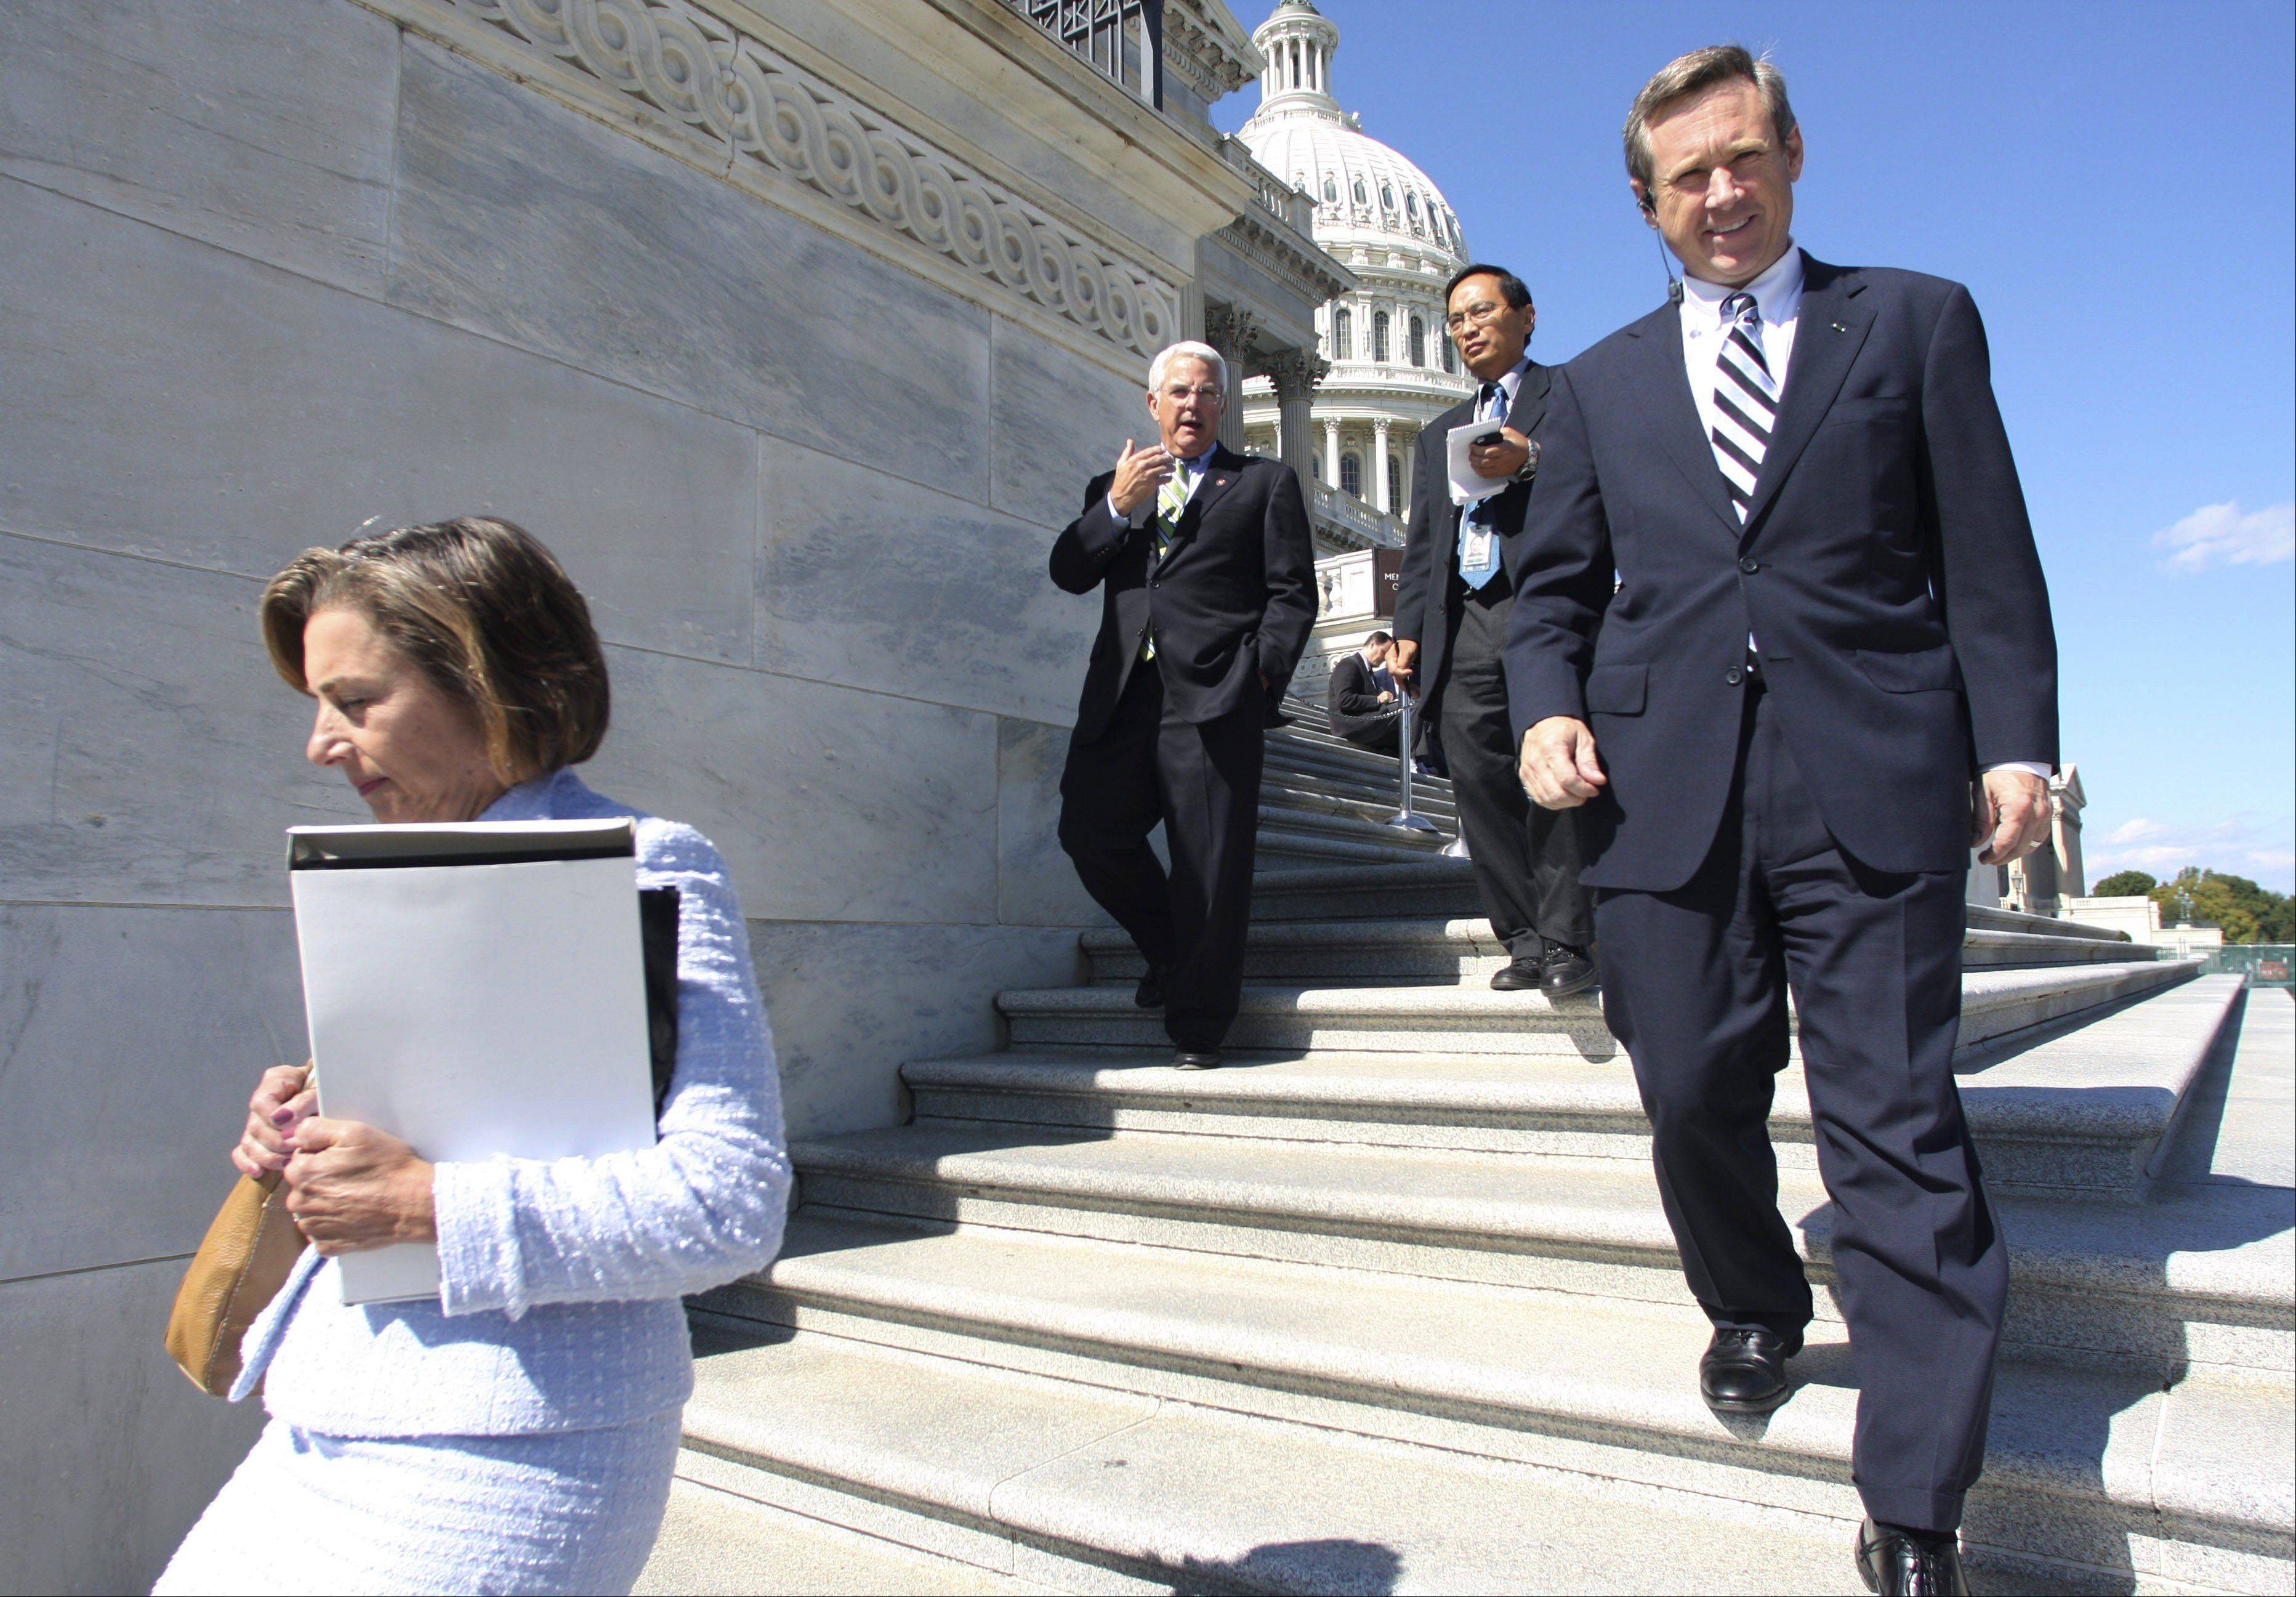 Rep. Janice Schakowsky, D-Ill., left, Rep. John Shadegg, R-Ariz., center, and Rep. Mark Kirk, R-Ill., right, walk down the House steps after voting for the Emergency Economic Stabilization Act of 2008 Friday, Oct. 3, 2008 on Capitol Hill in Washington.